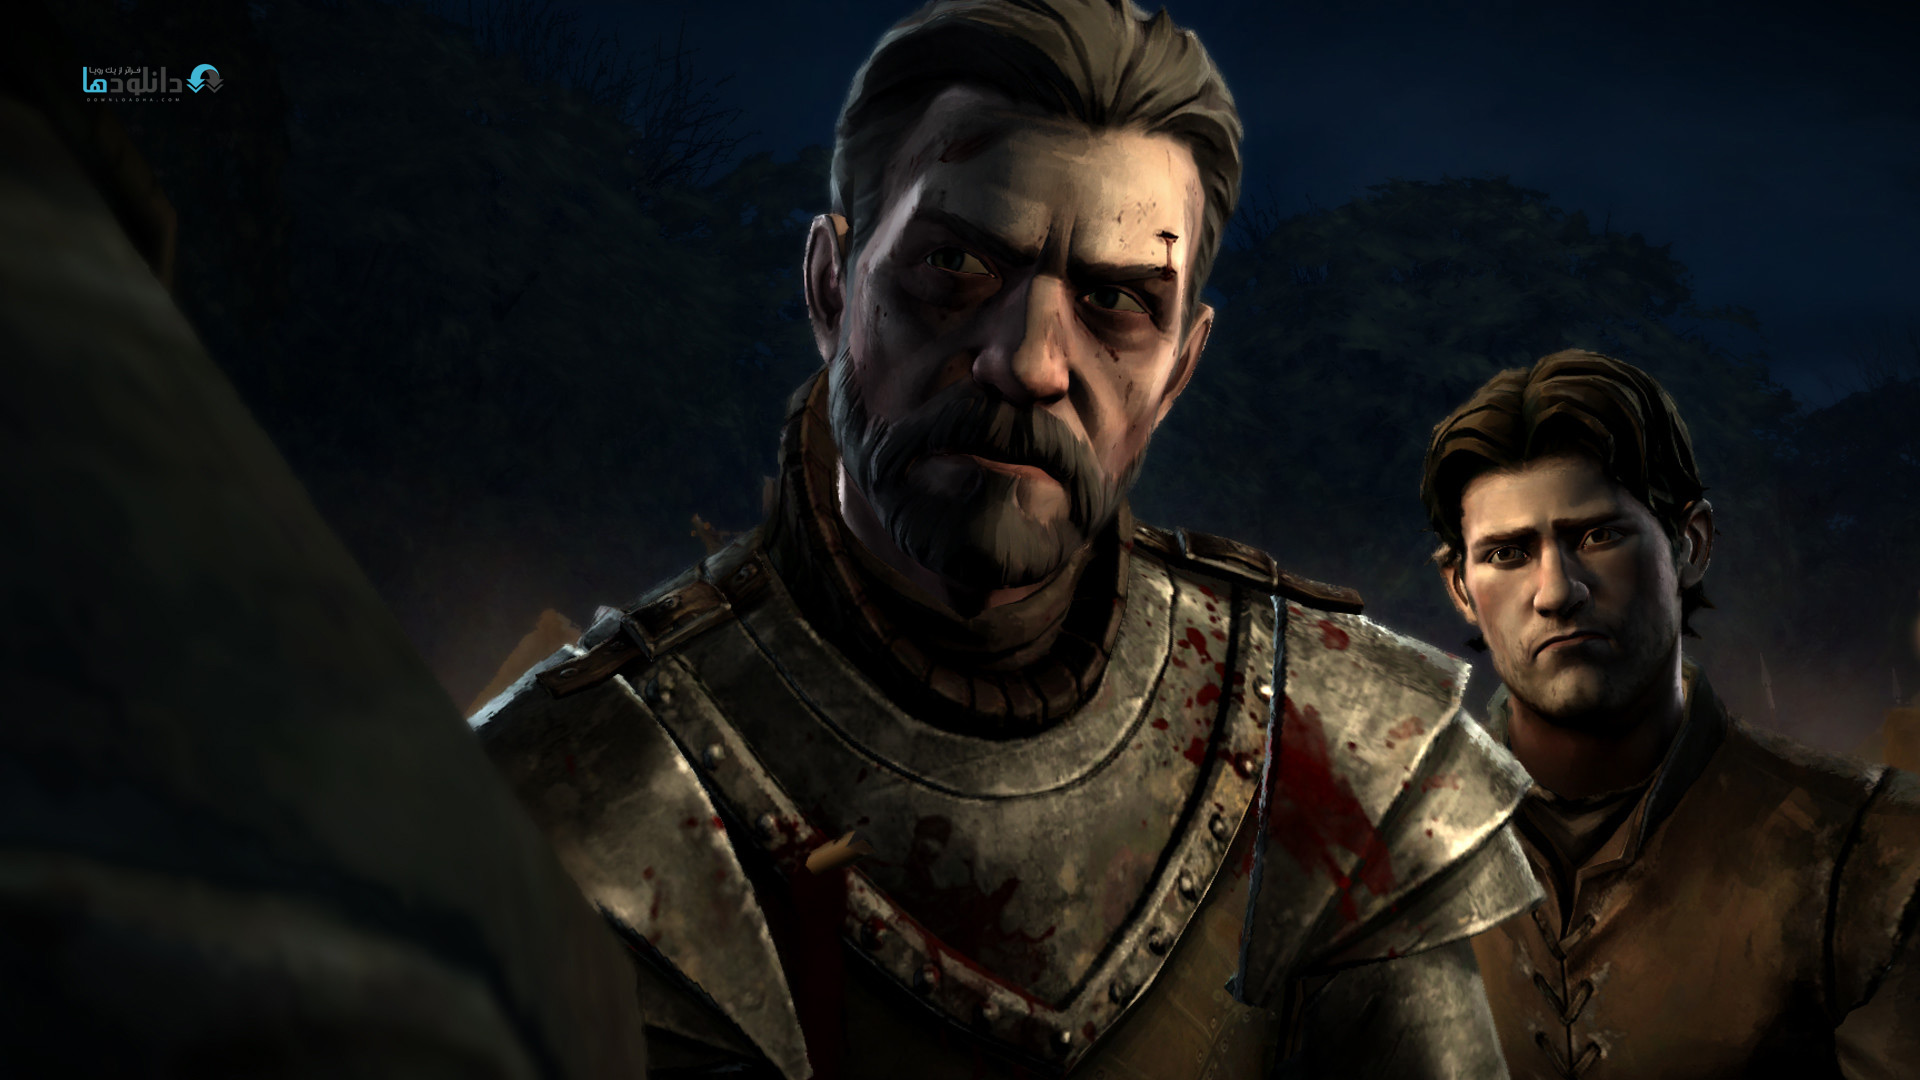 http://img5.downloadha.com/hosein/Game/December%202014/02/Game-of-Thrones-A-Telltale-Games-Series-screenshots-03-large.jpg